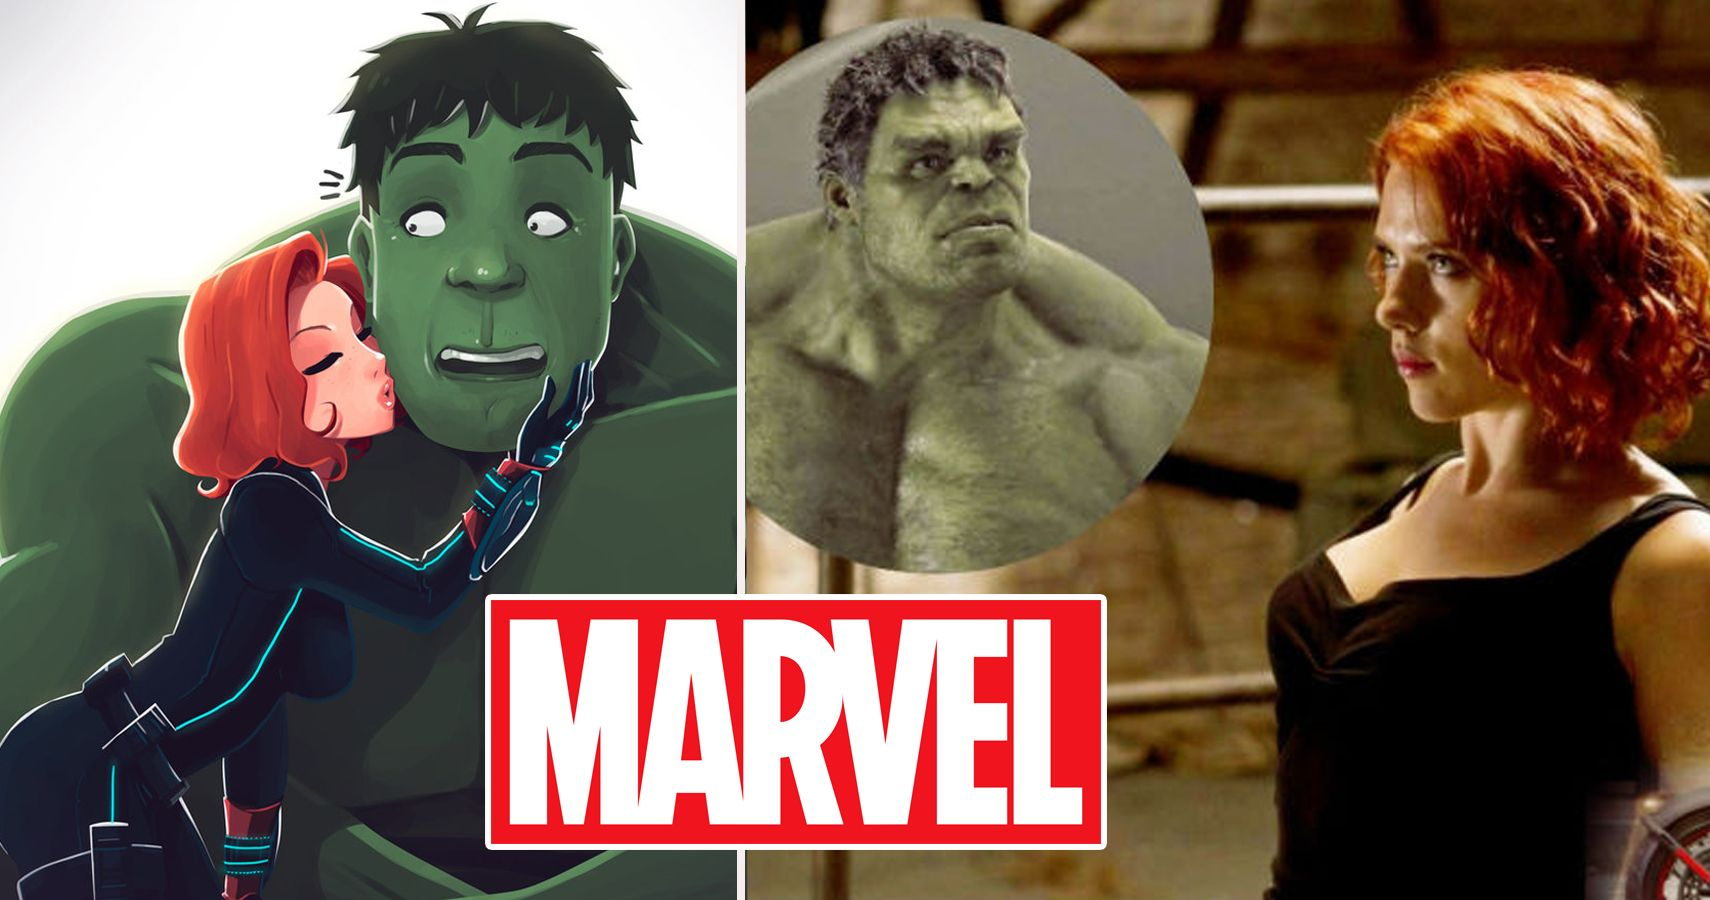 Marvel: 20 Weird Facts About Black Widow And The Hulk's Relationship